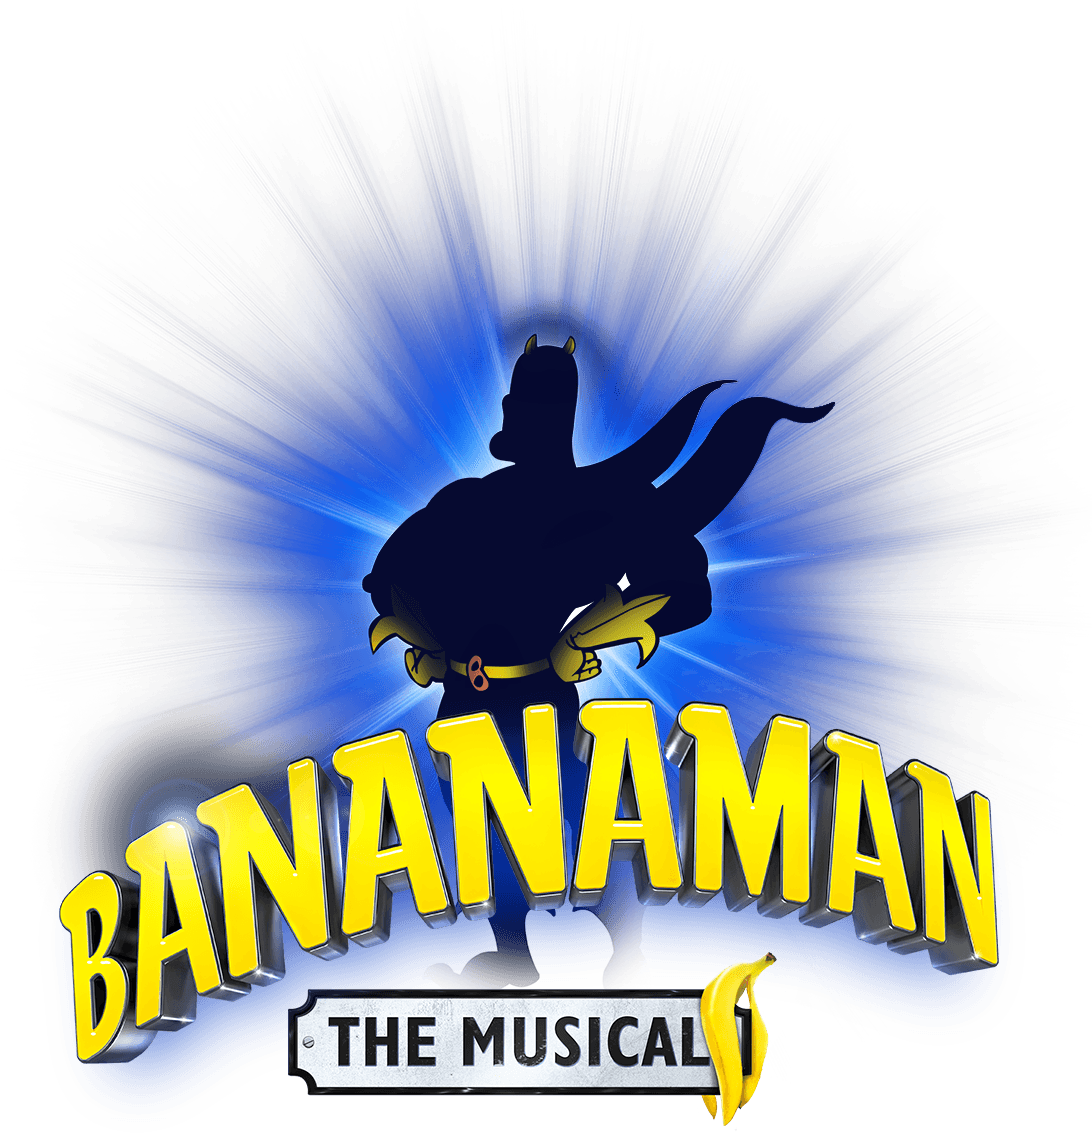 Bananaman Backgrounds on Wallpapers Vista